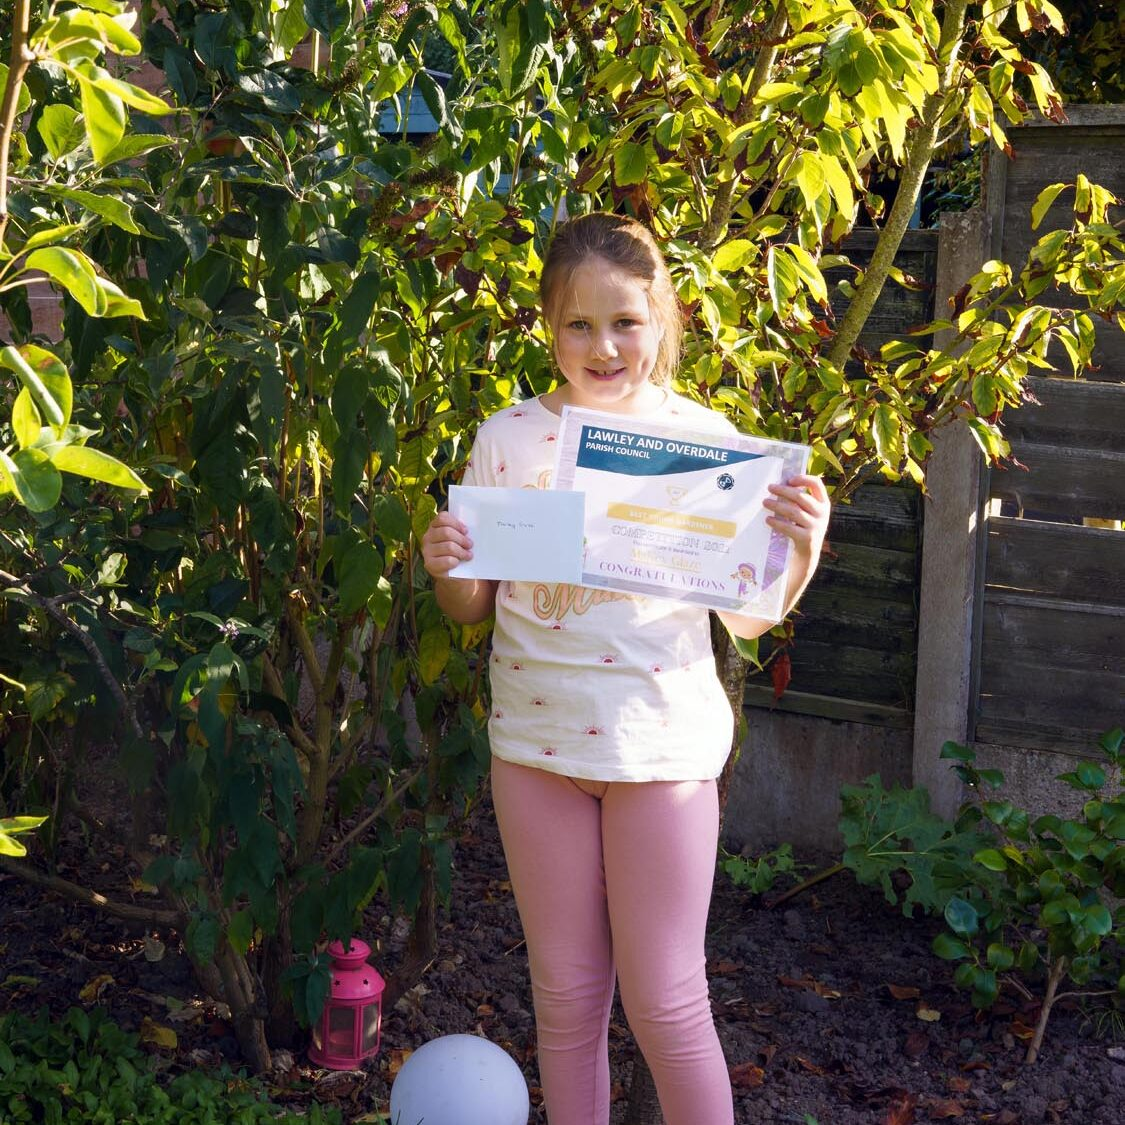 A young girl standing in front of some trees, holding a certificate.